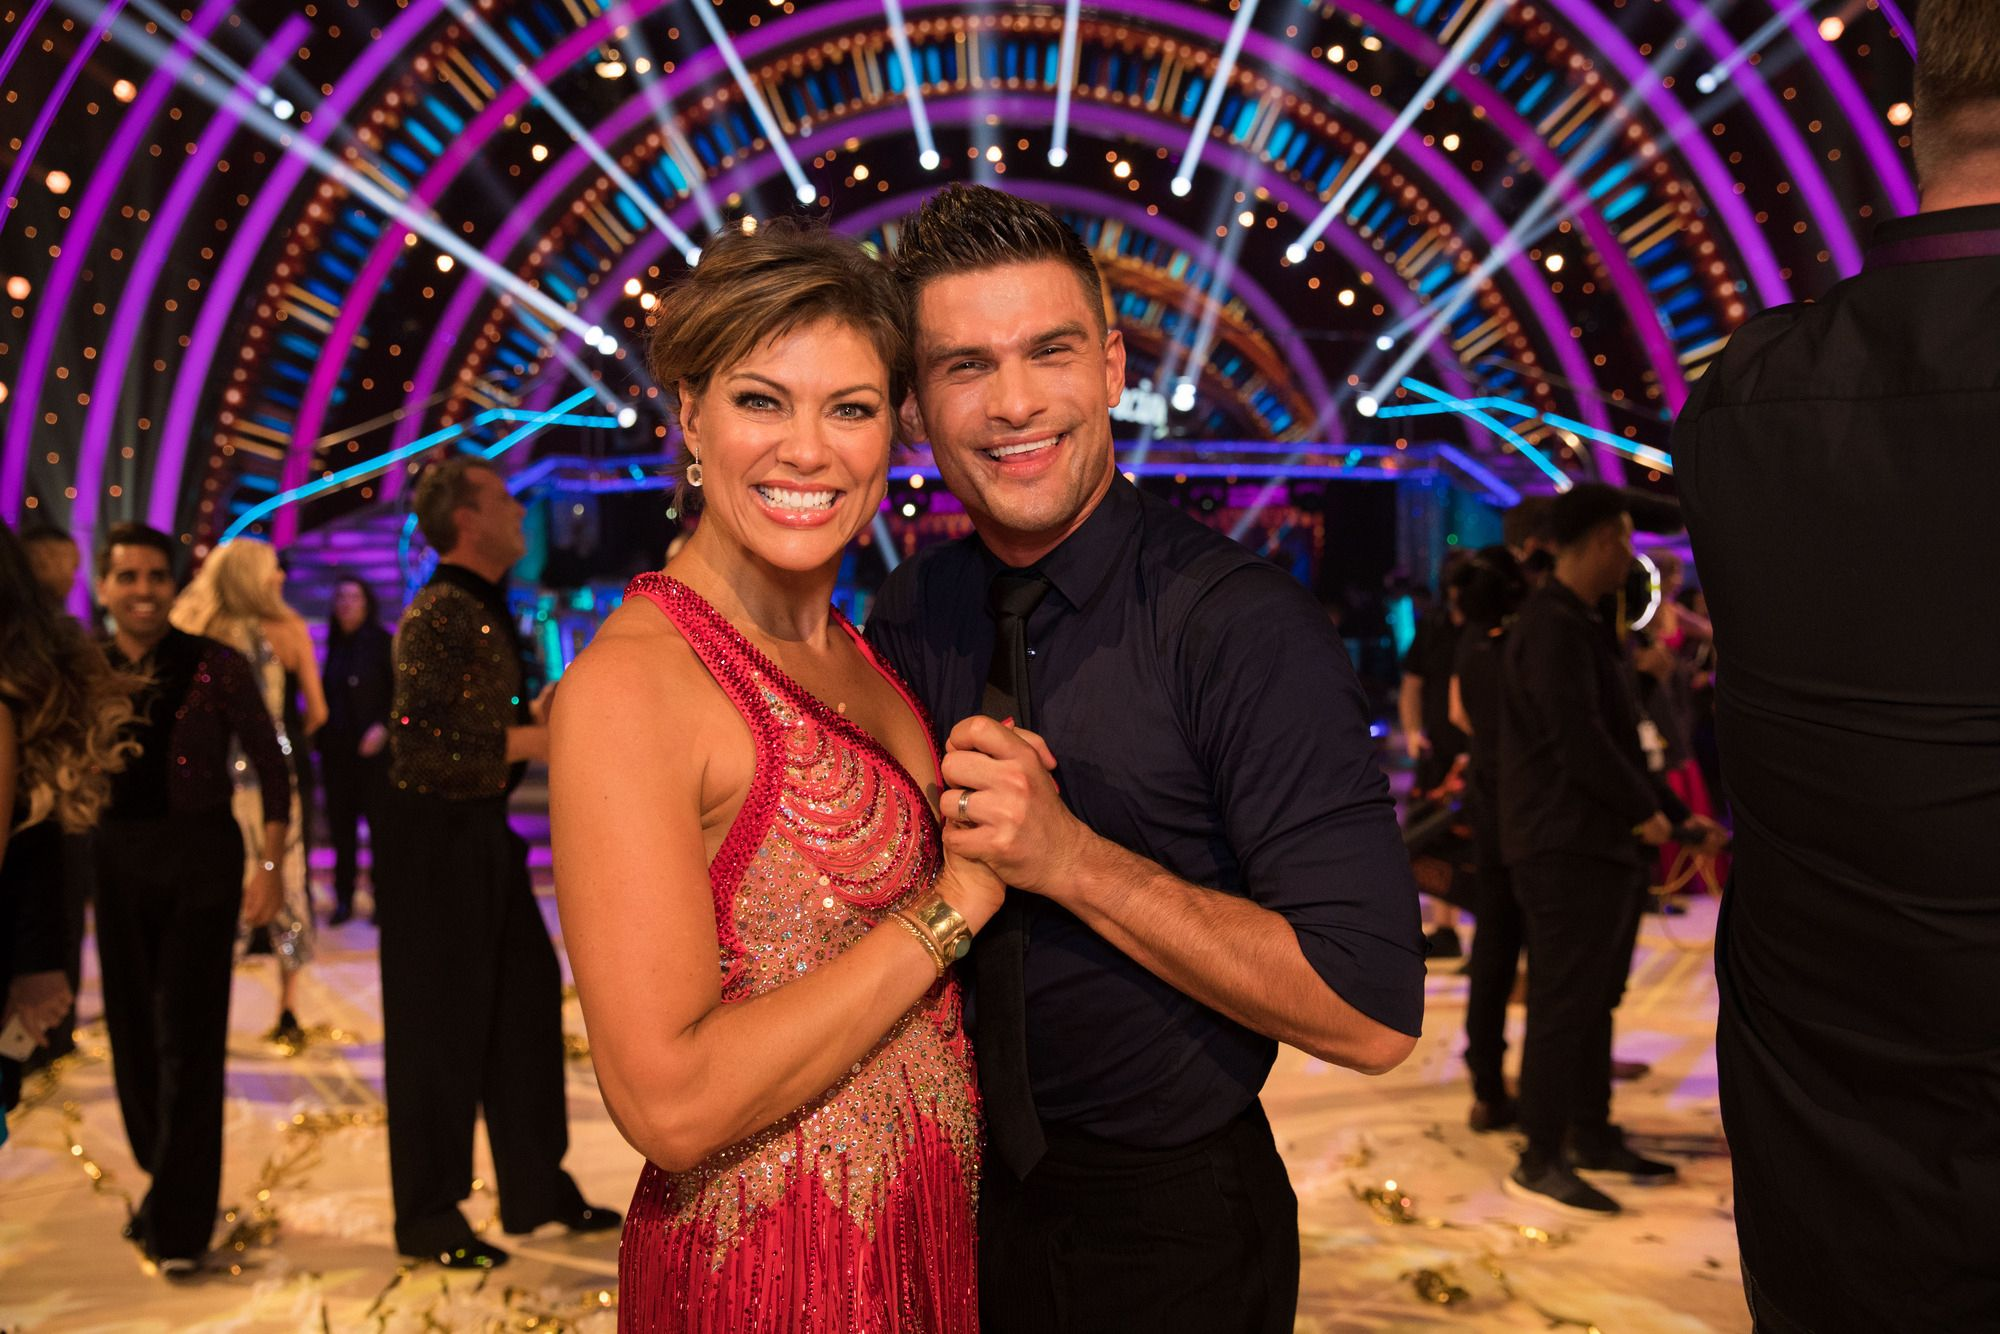 SABRINA: Who is aliash from strictly dating